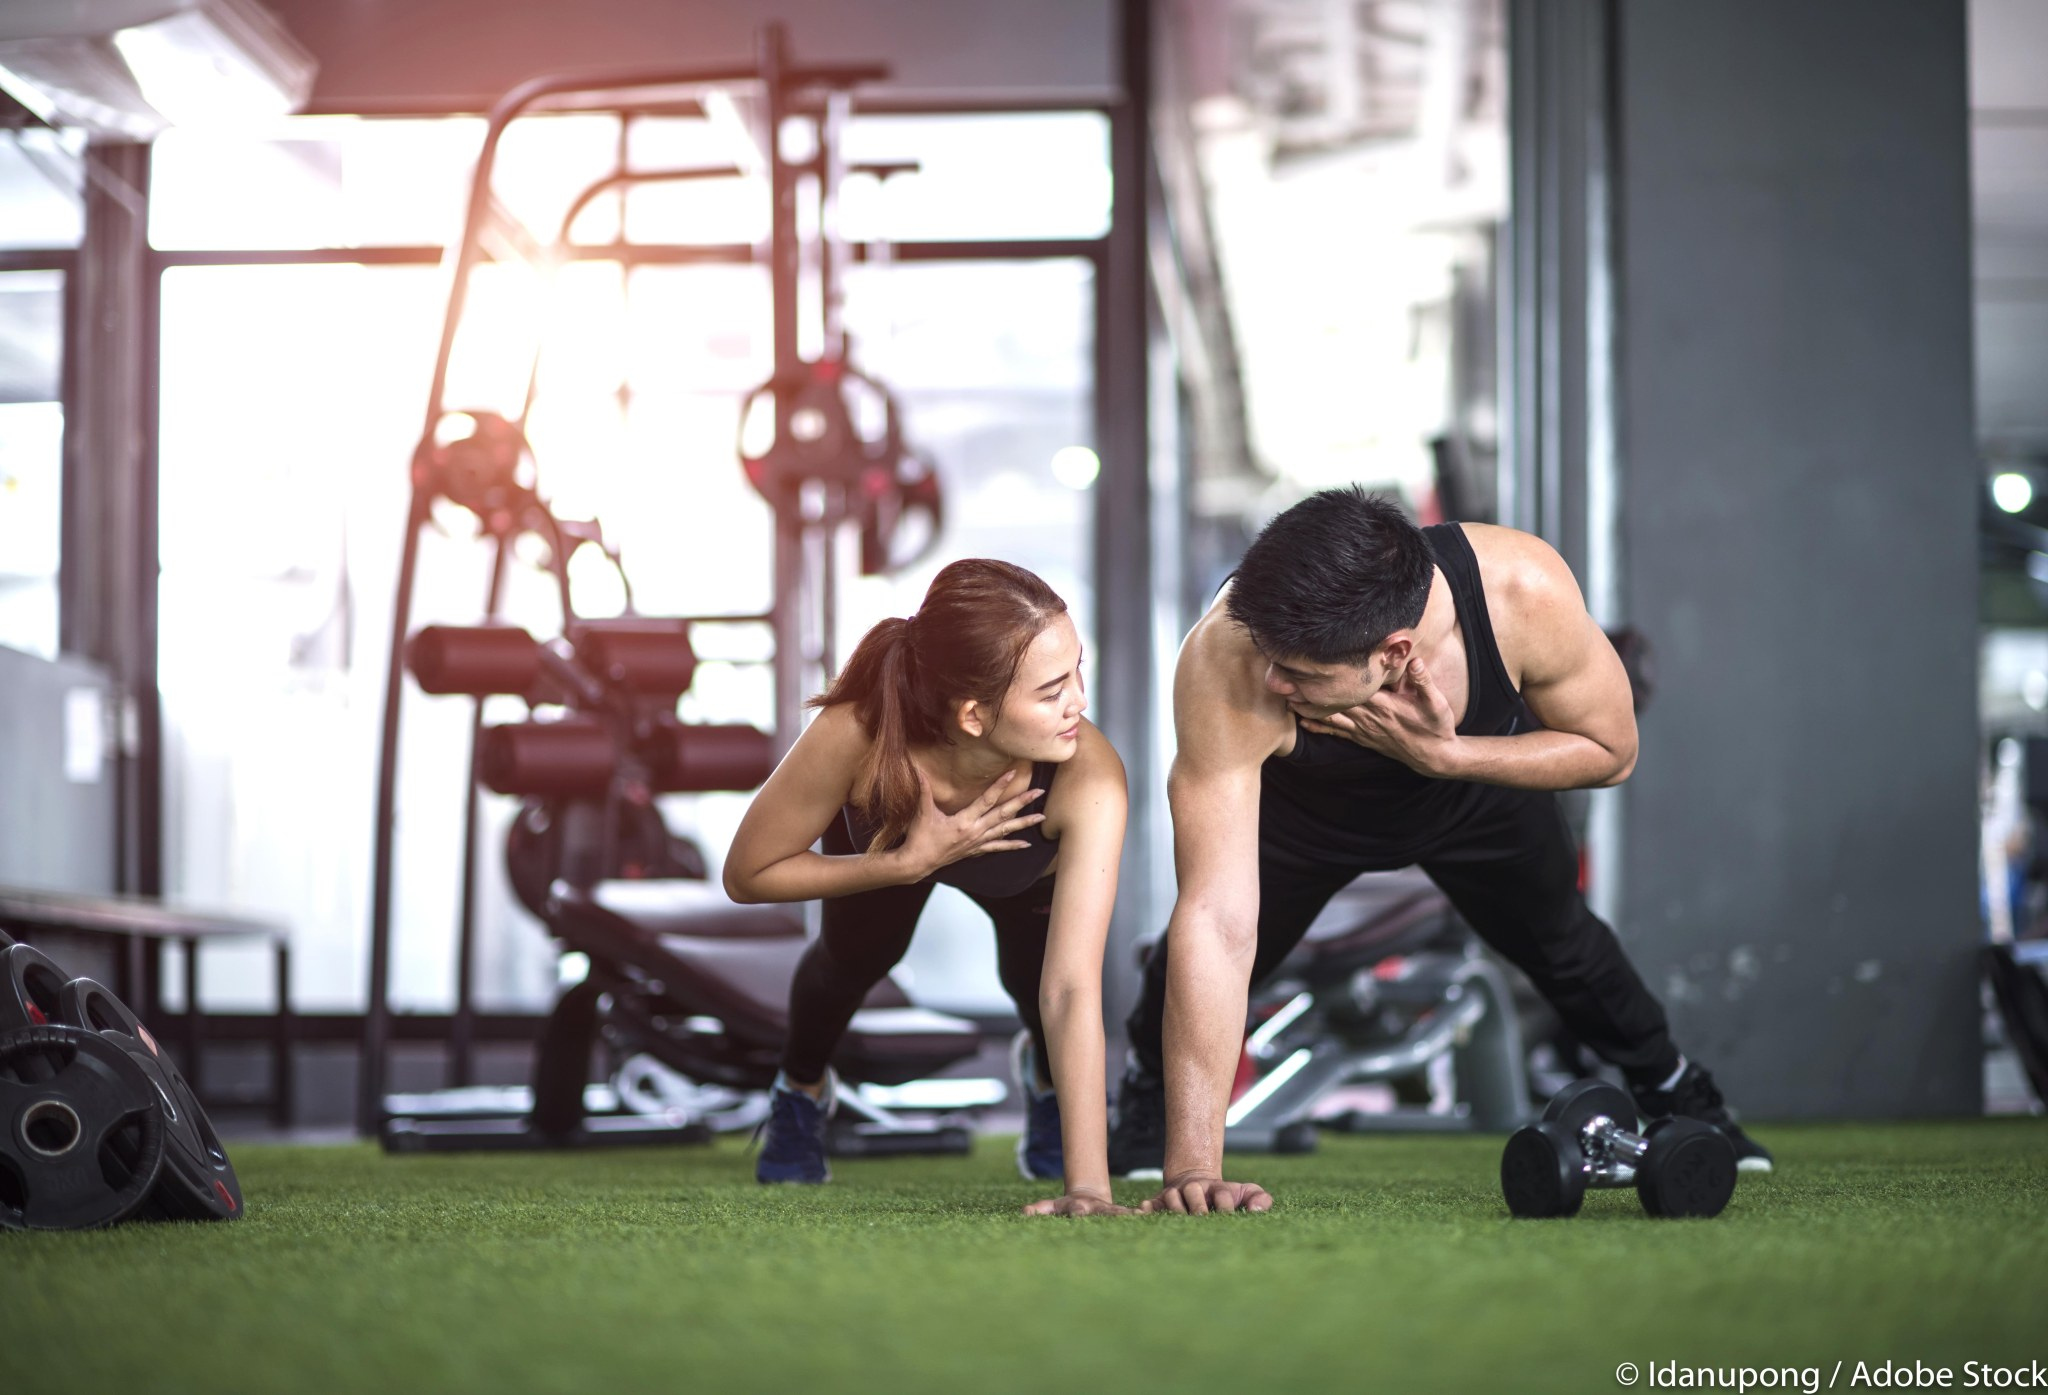 couple lover training exercise together in gymnasium